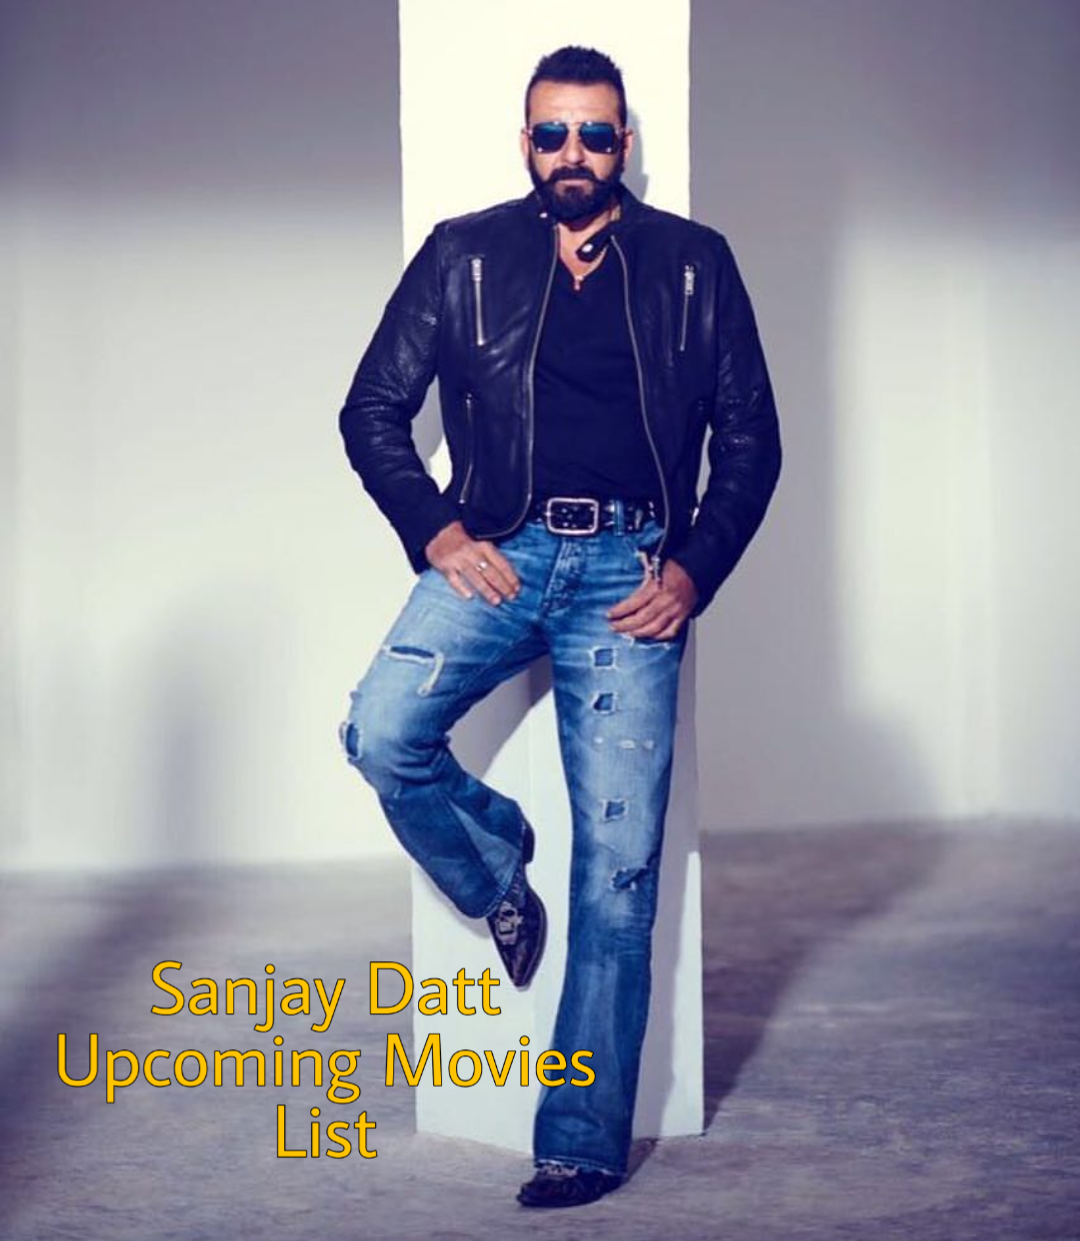 Sanjay Dutt Upcoming Movies List In 2019, 2020 With ...